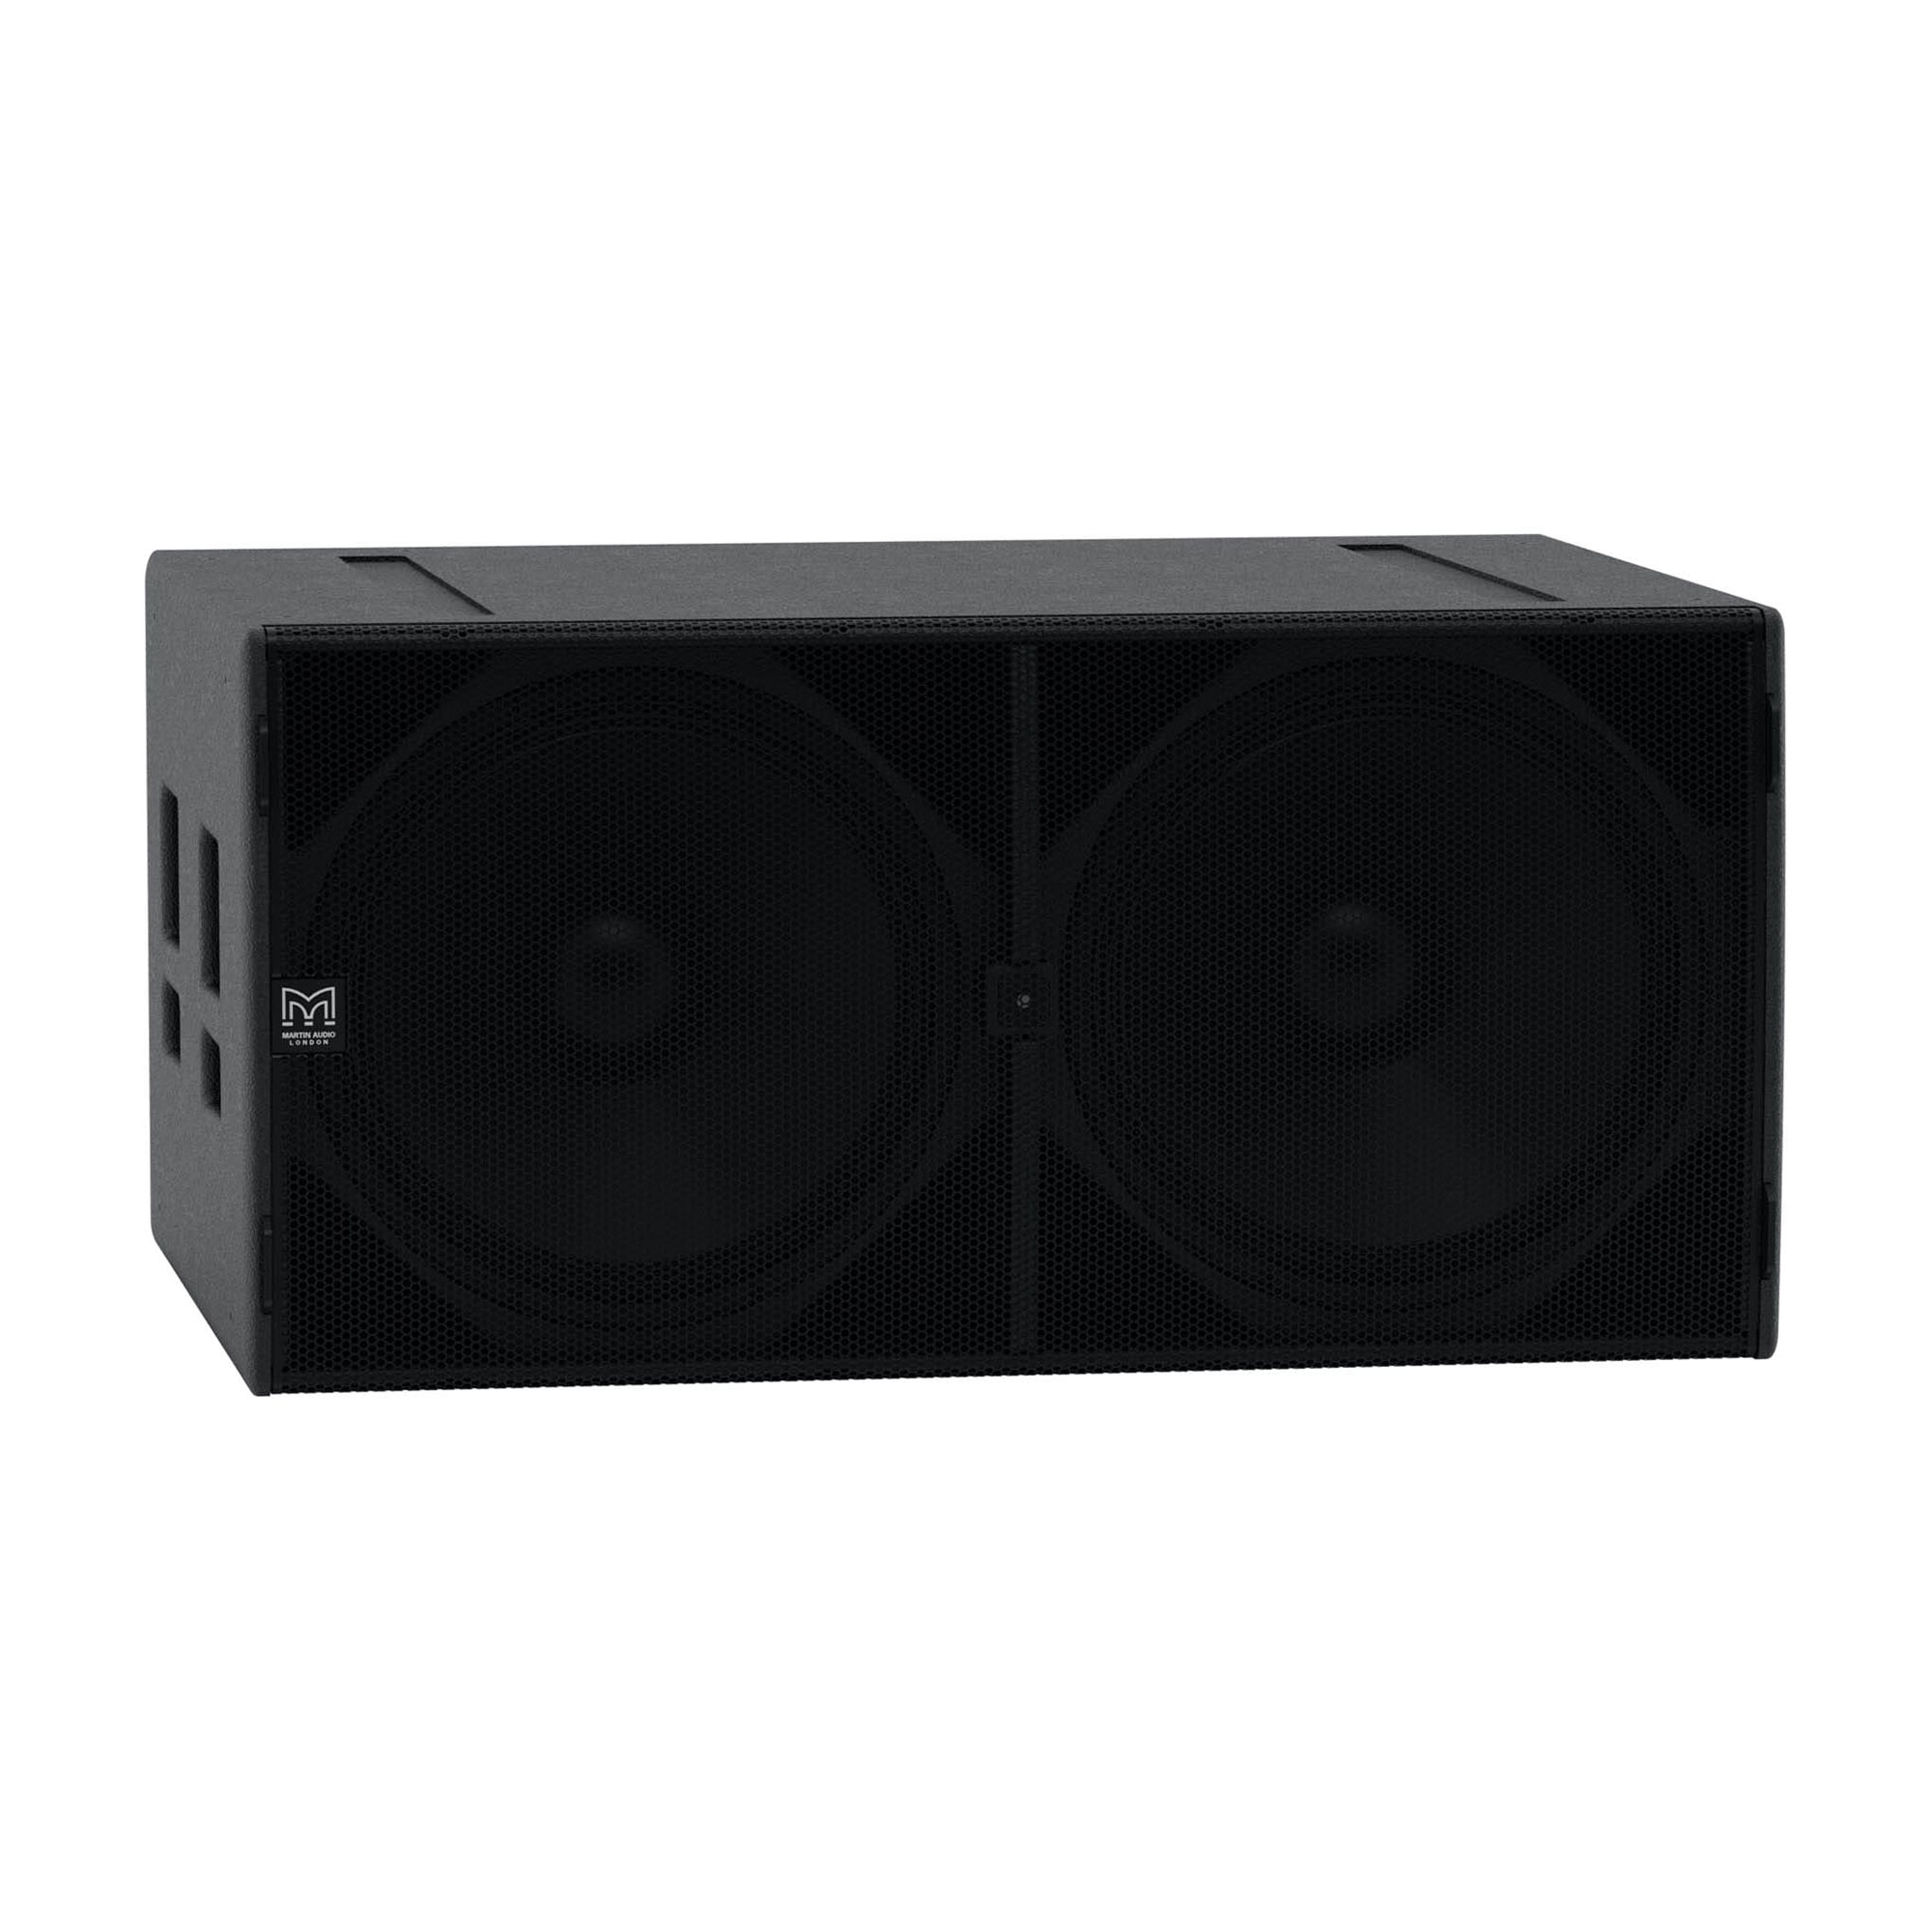 Martin Audio CSX-LIVE 218 Subwoofer | with a maximum SPL